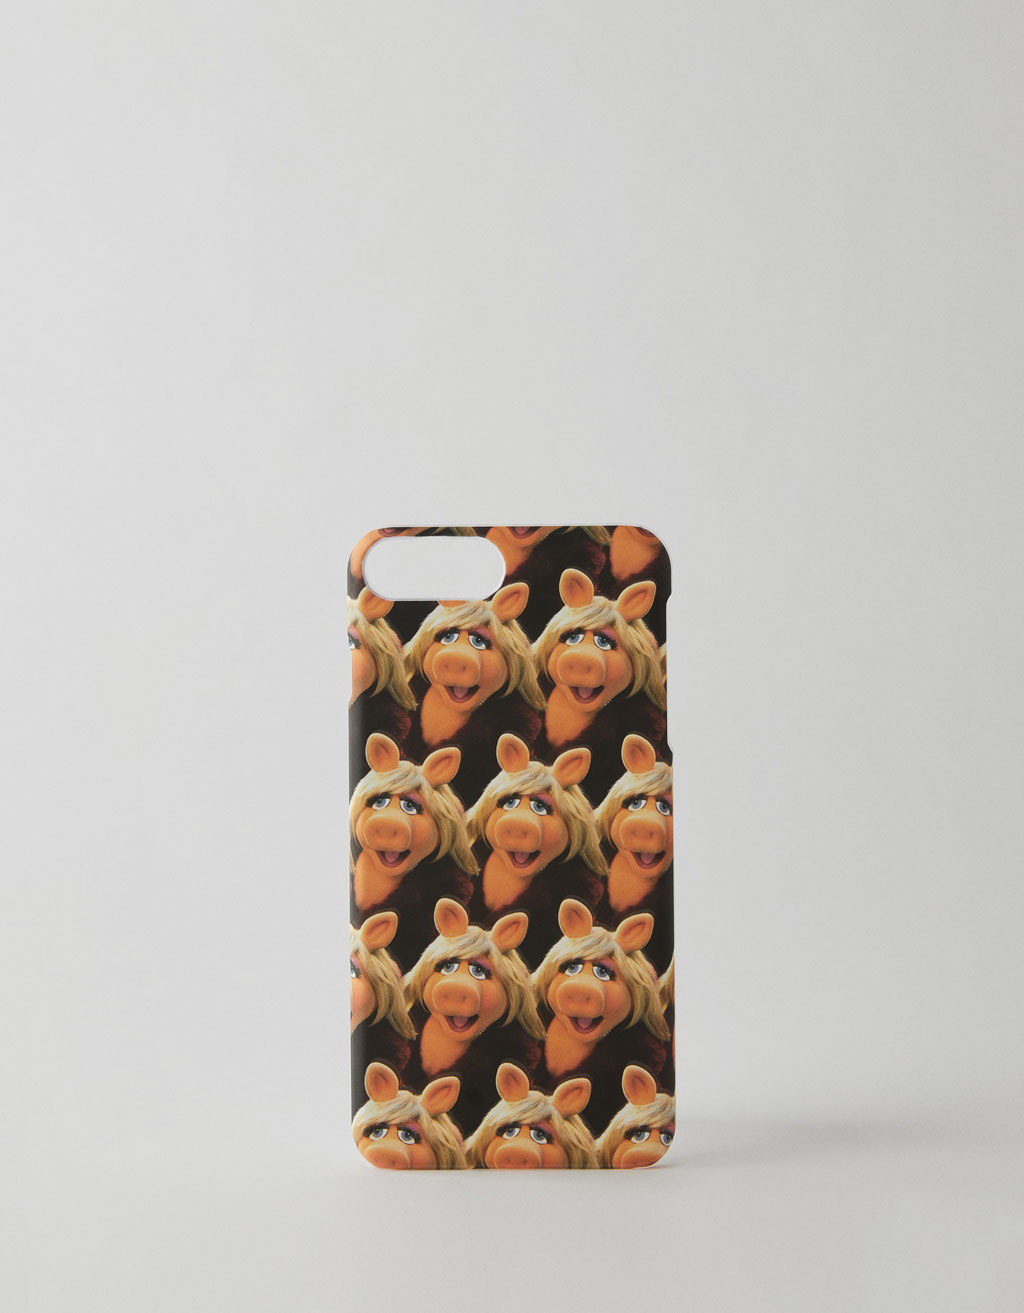 Carcasa Muppets Miss Piggy  iPhone 6 plus / 7 plus / 8 plus